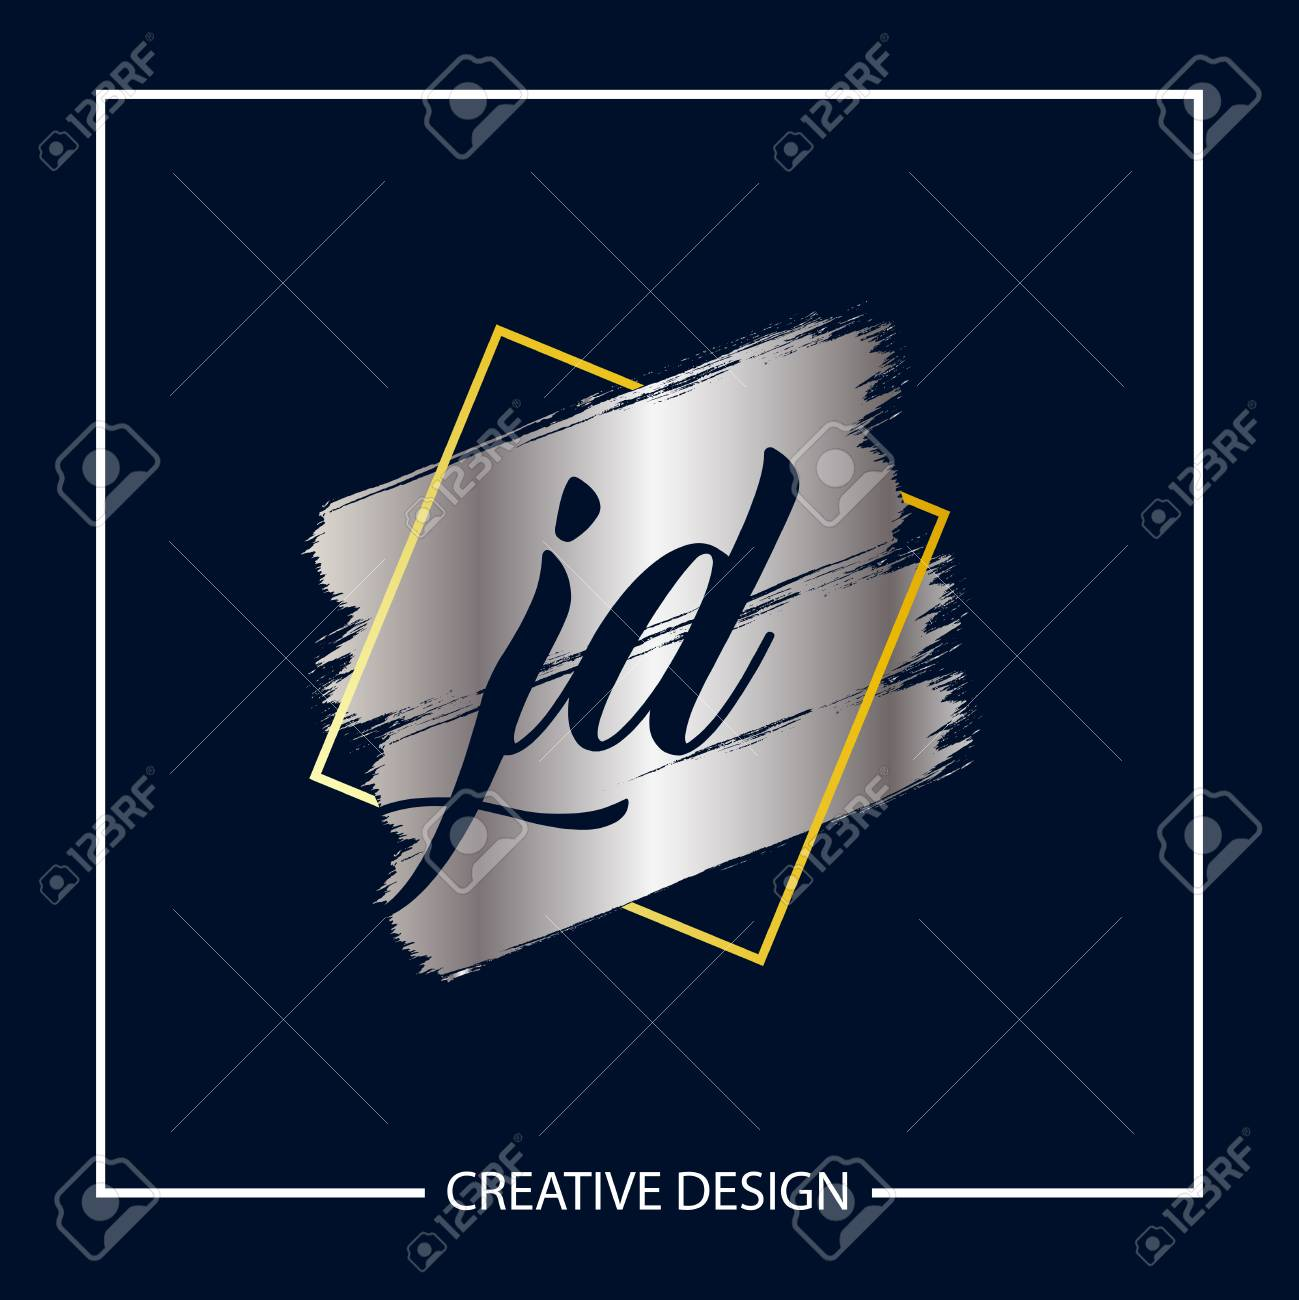 initial letter jd logo template design royalty free cliparts vectors and stock illustration image 112579190 initial letter jd logo template design